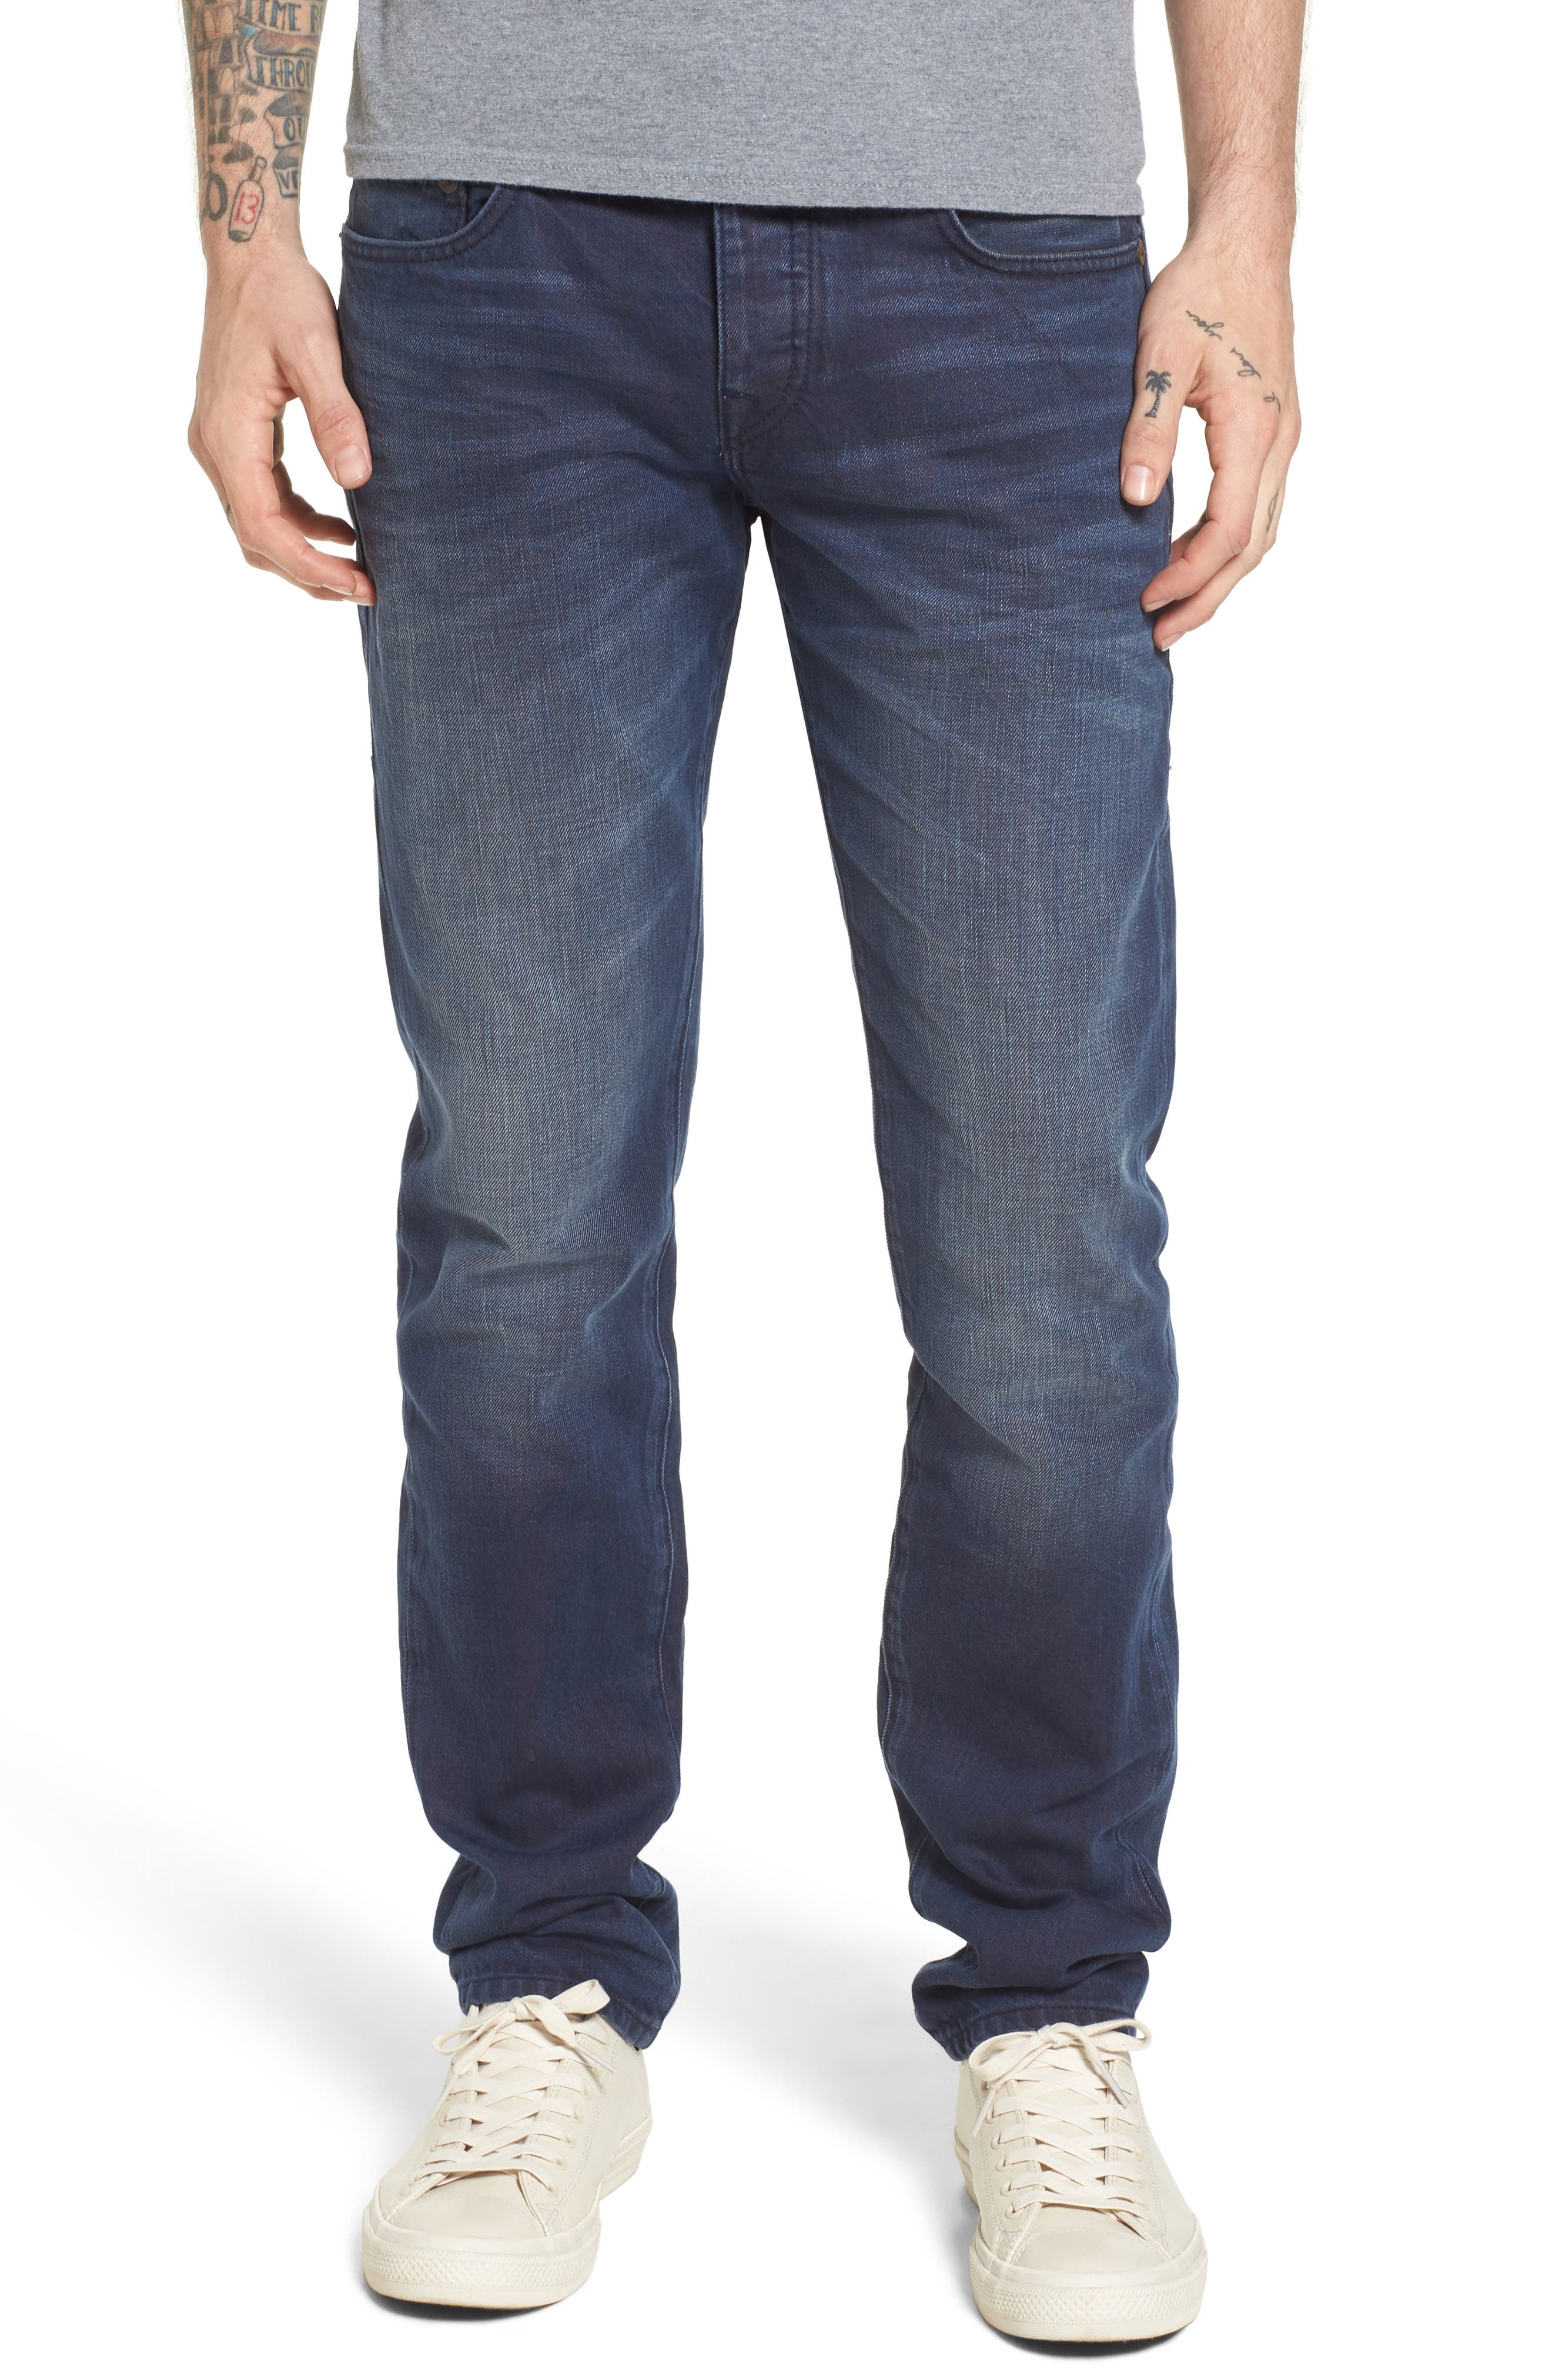 Rocco Skinny Fit Jeans,                             Main thumbnail 1, color,